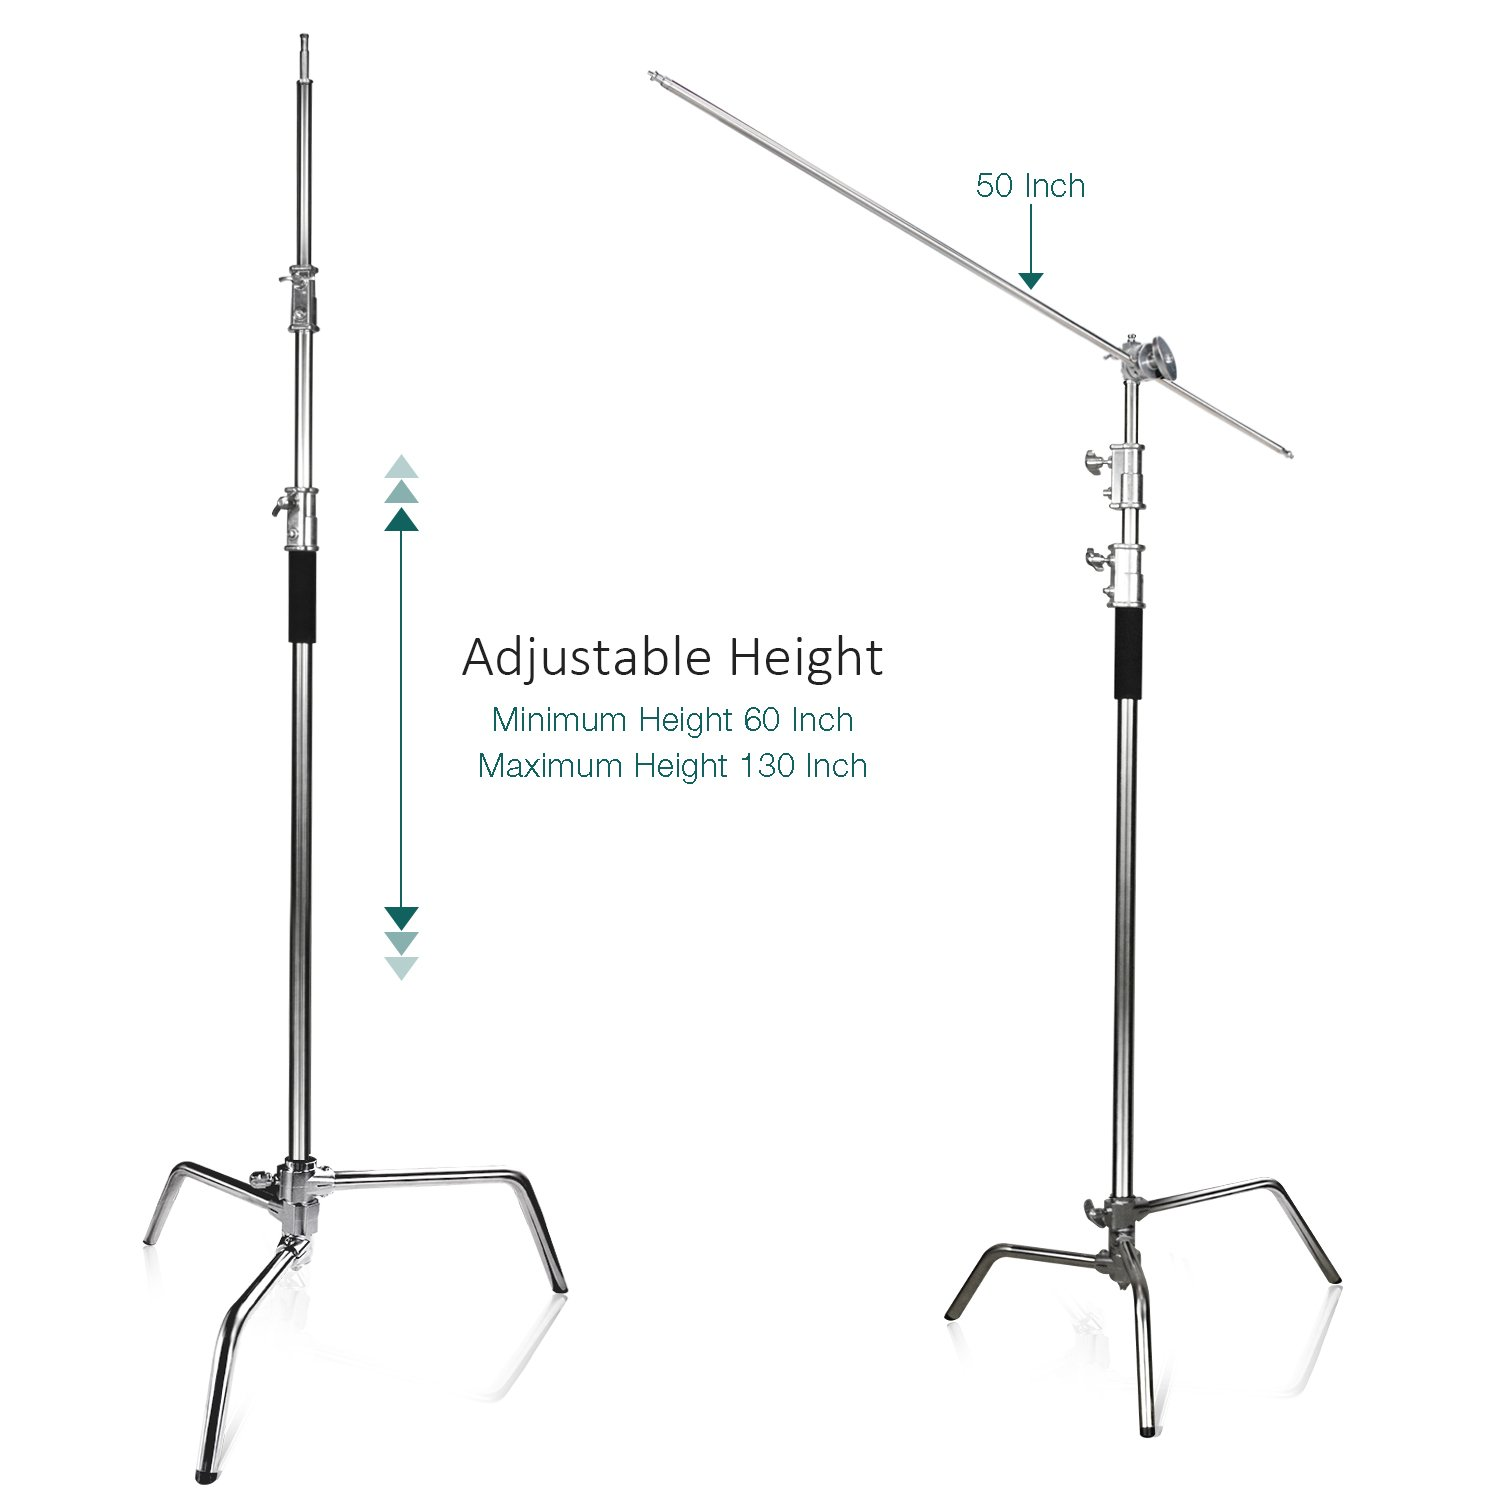 Turtle Base 4 ft AGG2712 LimoStudio Heavy Duty Stainless Steel C-Stand Kit with 10 ft Stainless Steel Boom Arm Bar Max Height and Chrome Grip Head Adapter Boom Stand for Photo Video Studio